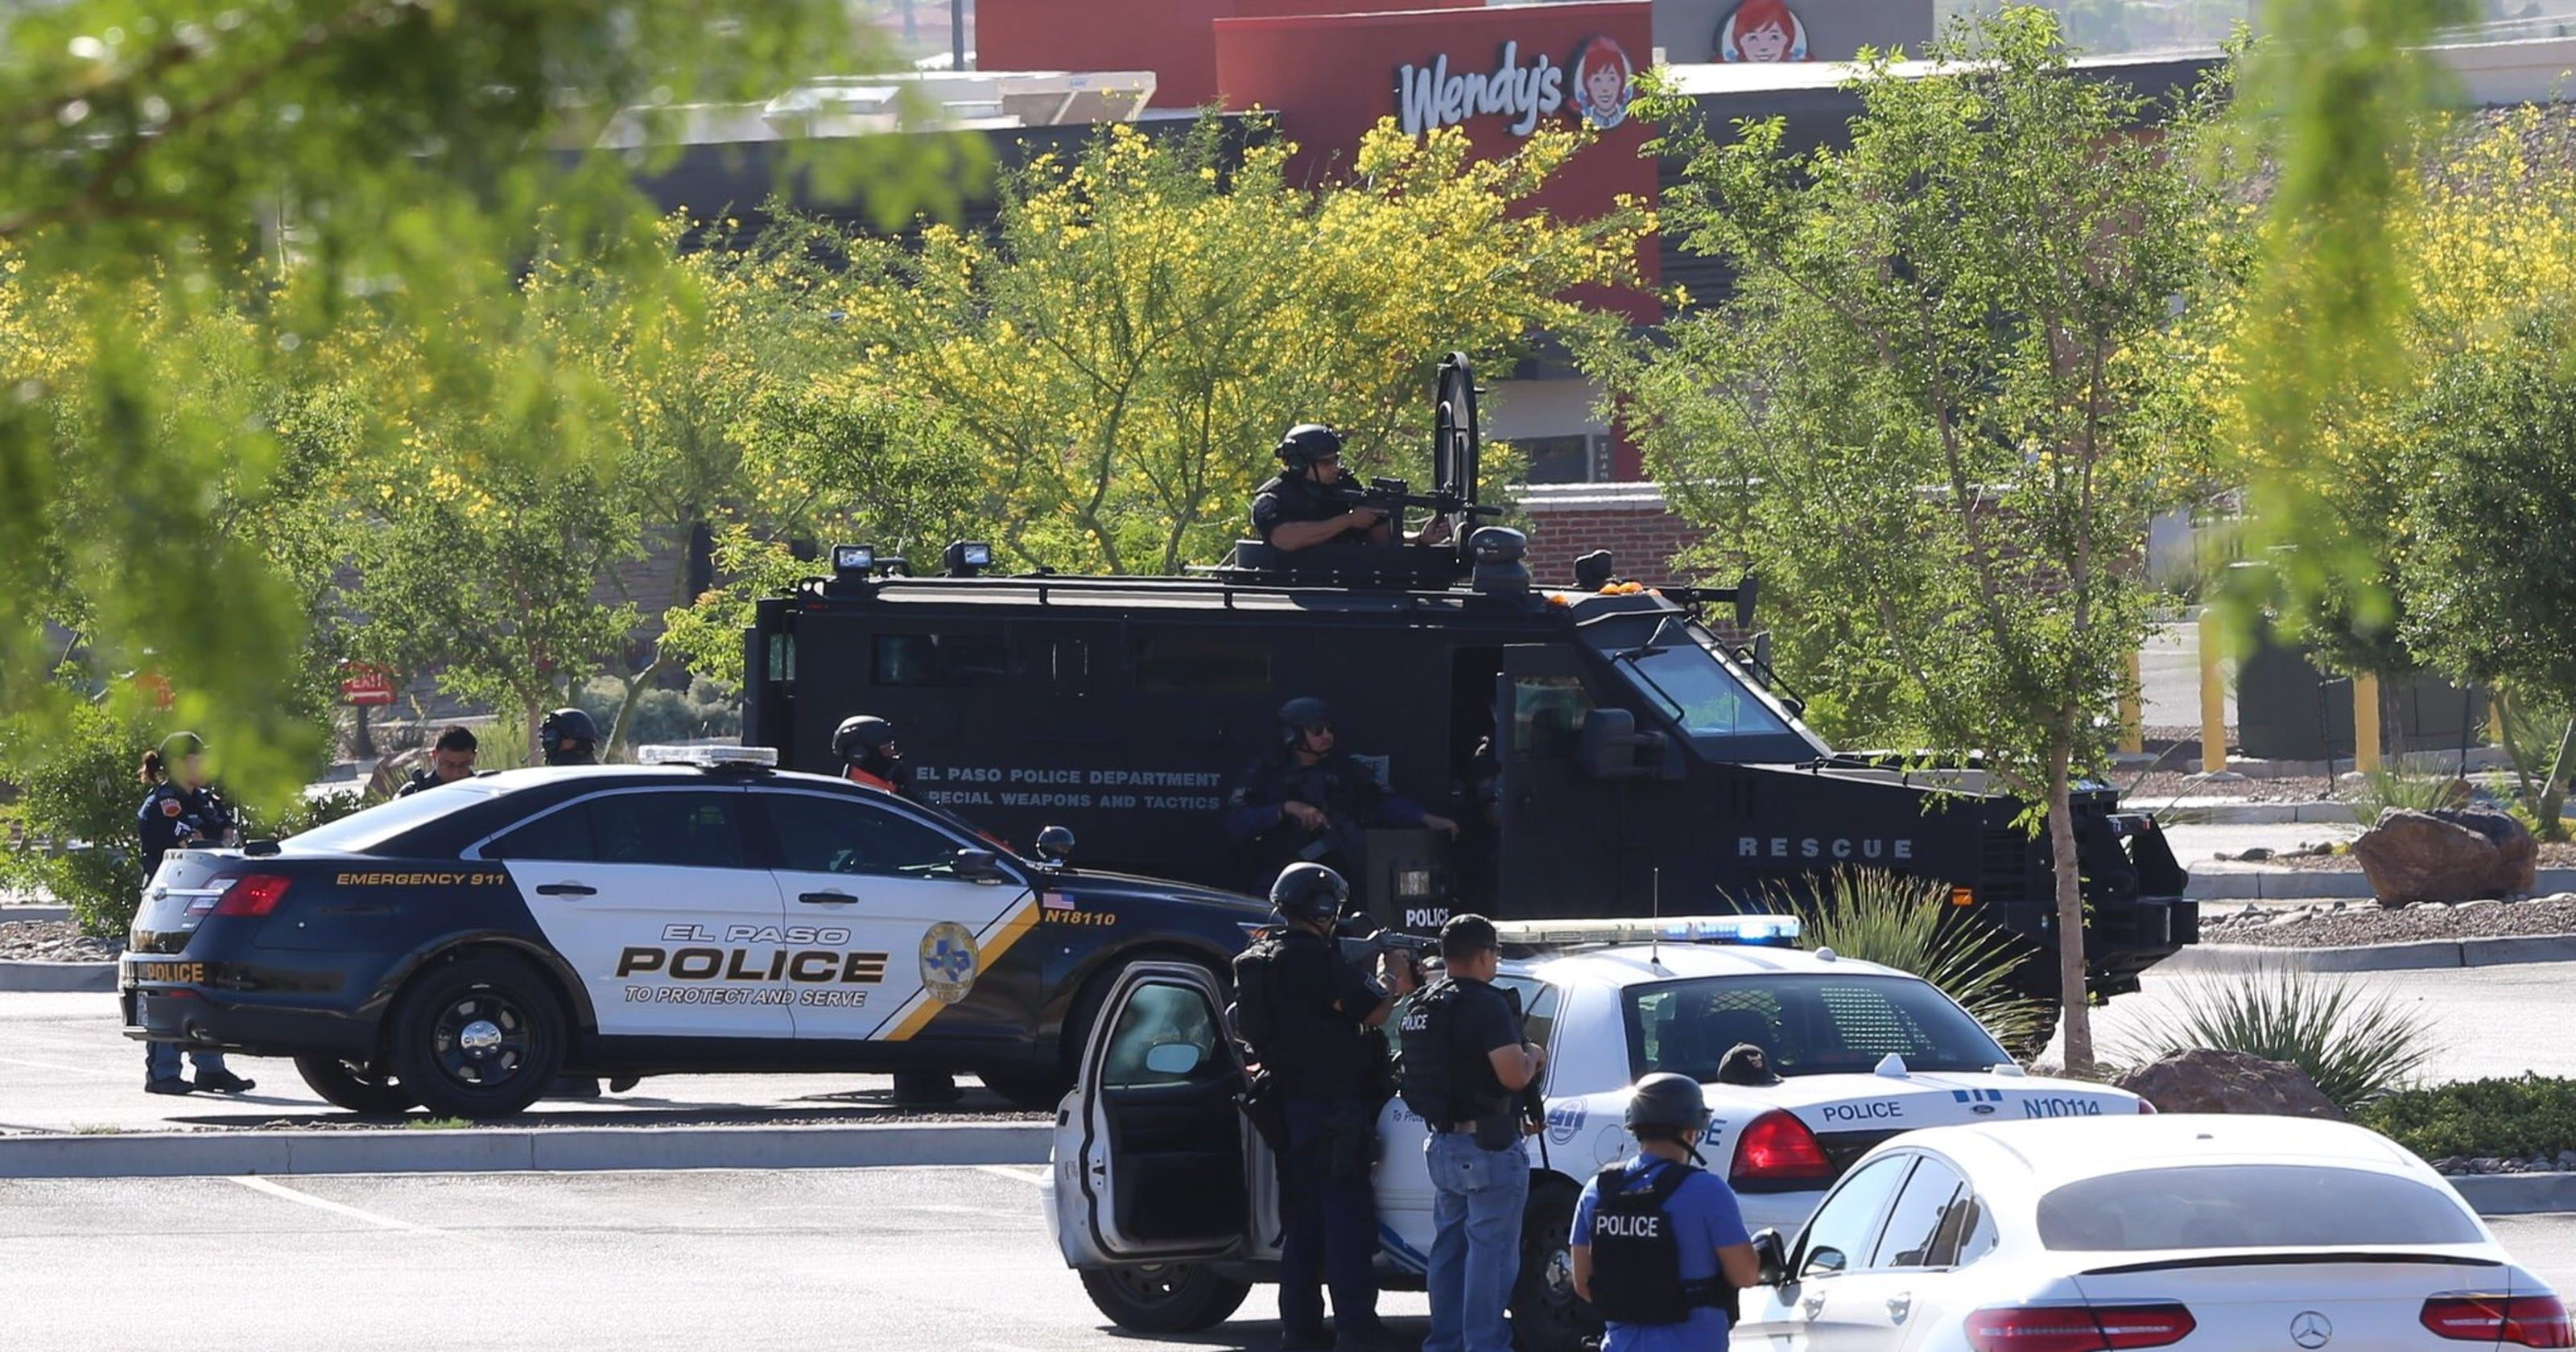 Man with gun causes SWAT situation at Northeast shopping center